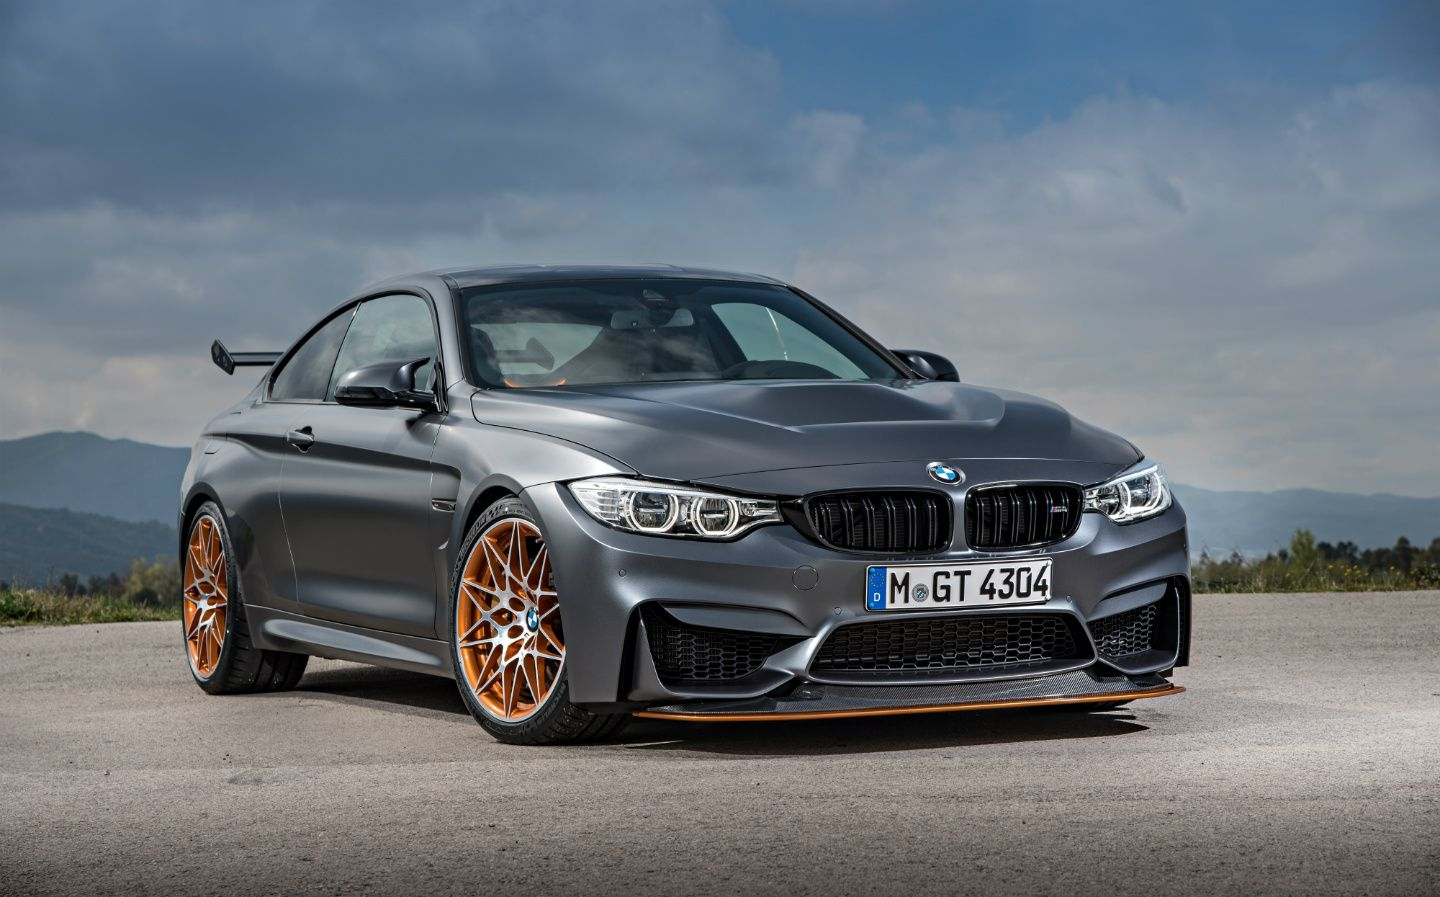 19 All New 2020 BMW M4 Gts Wallpaper